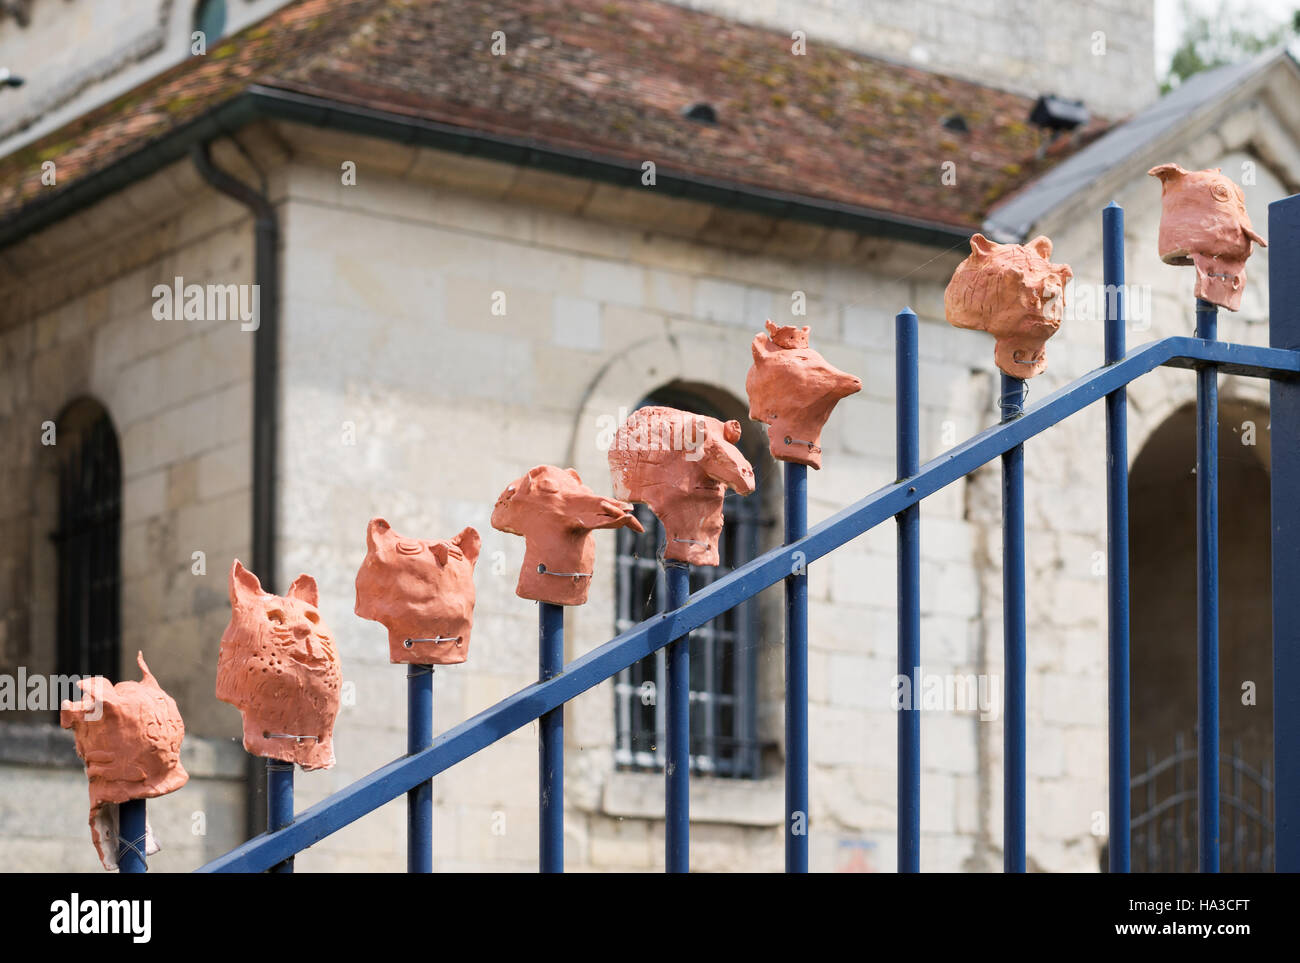 Clay head sculptures made by schoolchildren, Ressons Le Long, Picardy, France,  Europe - Stock Image